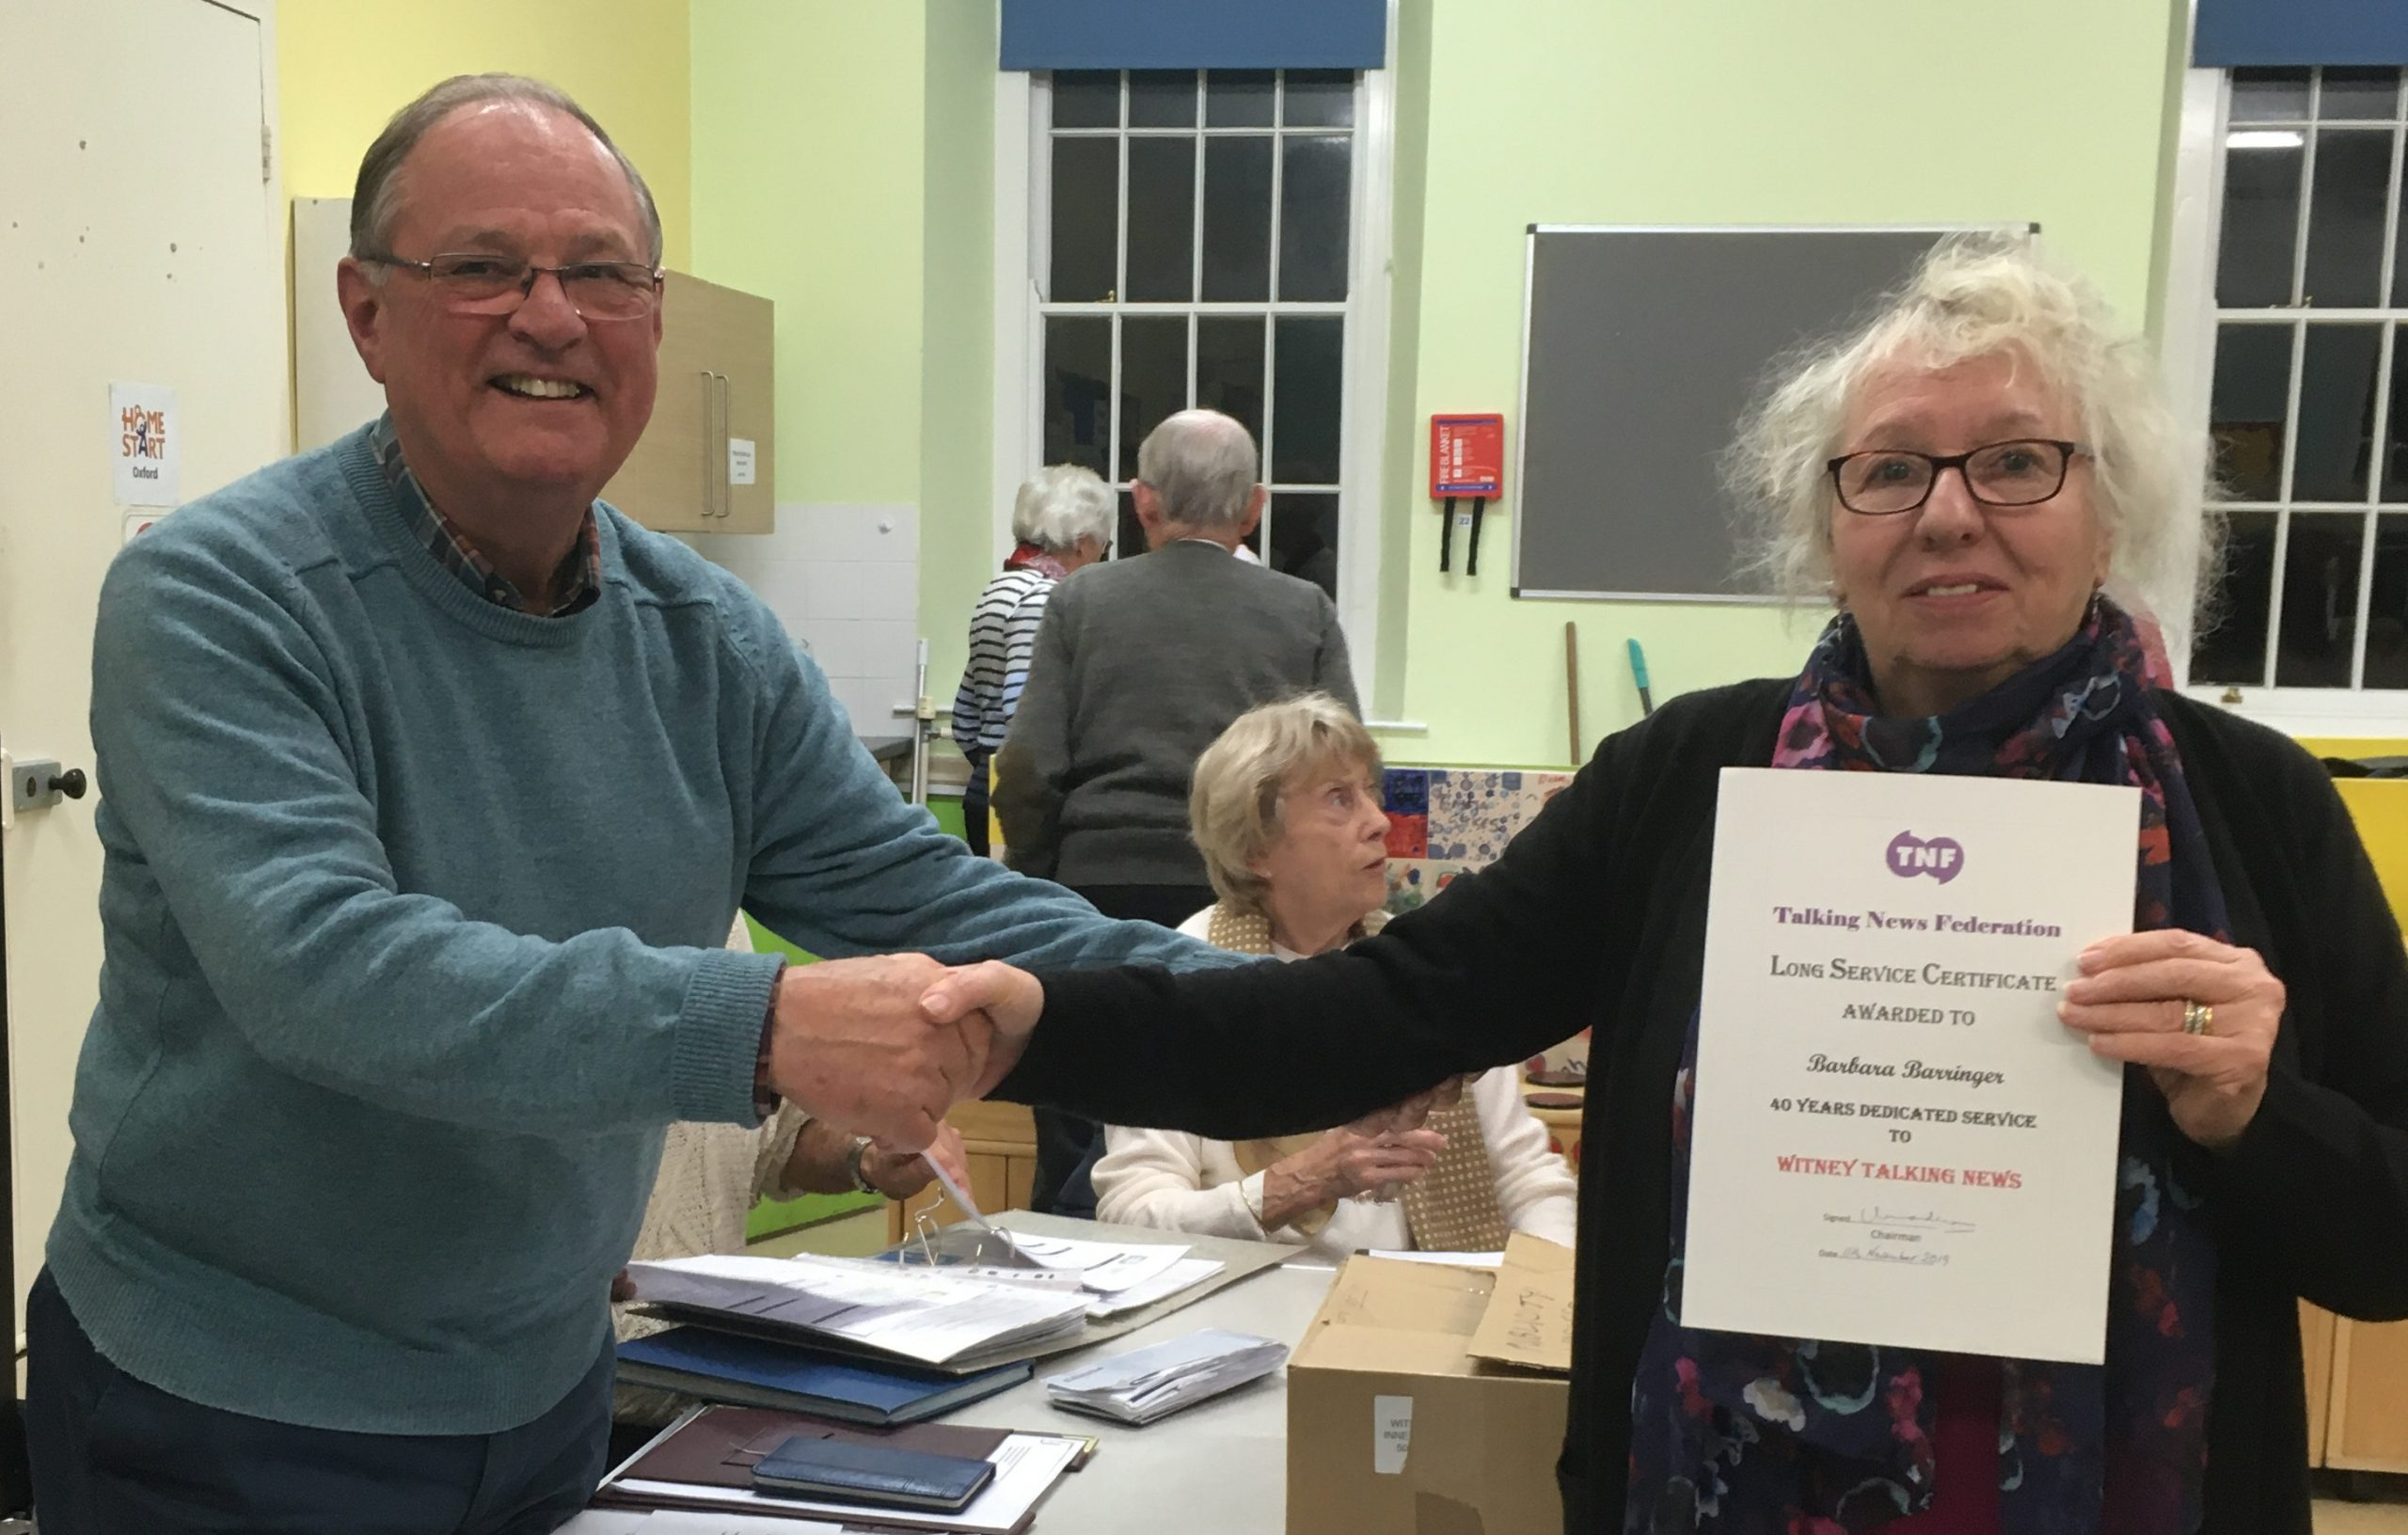 Volunteer Barbara Barringer receives her long service award from chairman Peter Brading.